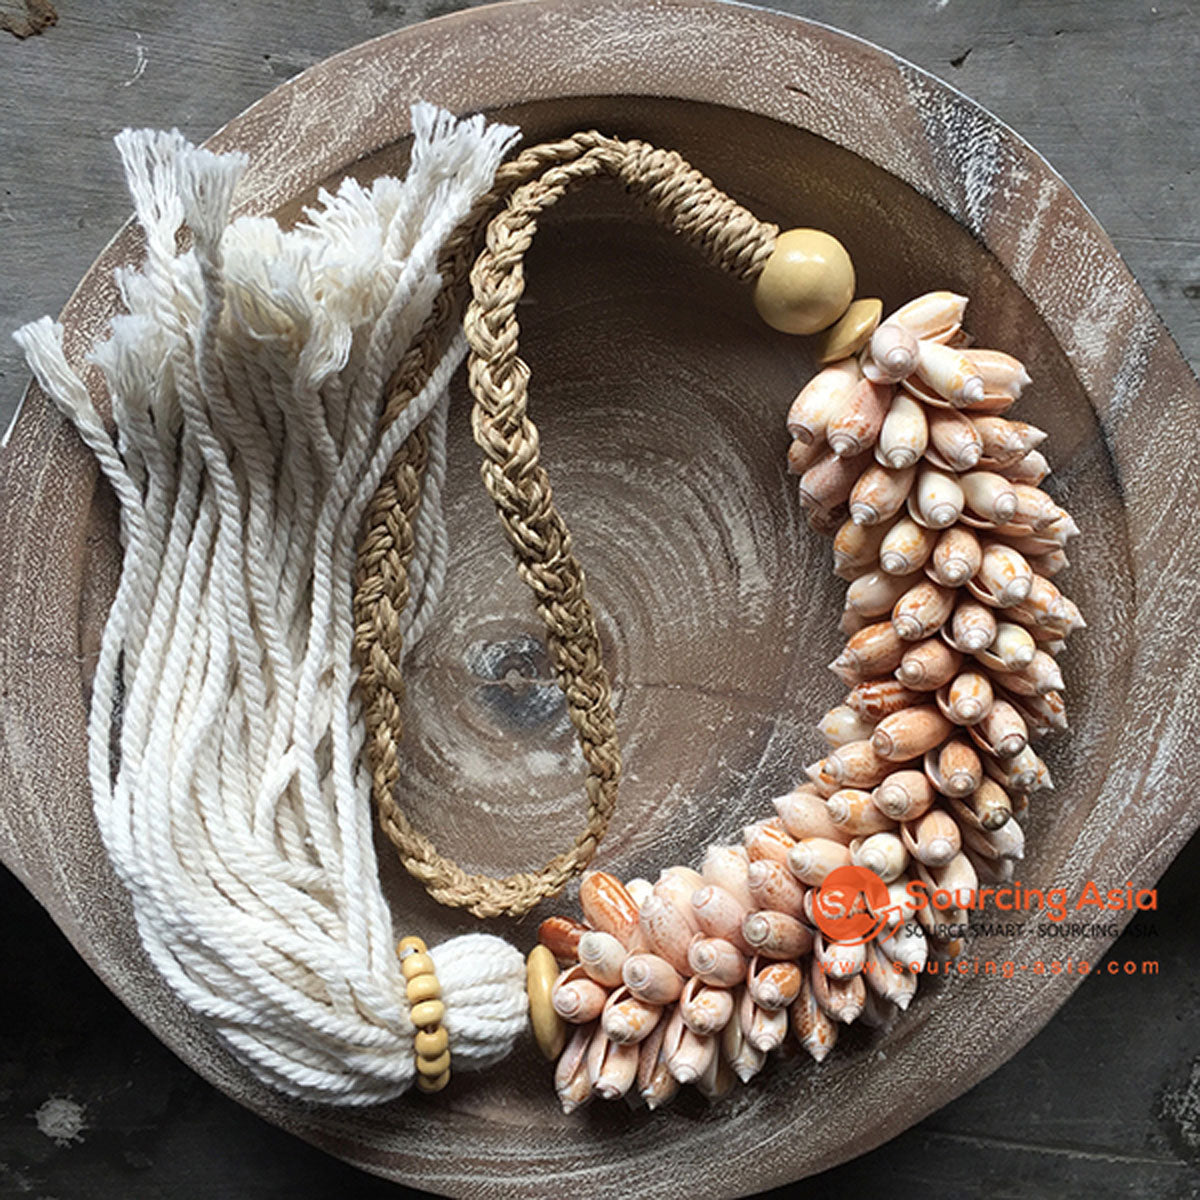 SHL047-21 NATURAL SHELL DECORATIVE TASSEL WITH MACRAME YARN